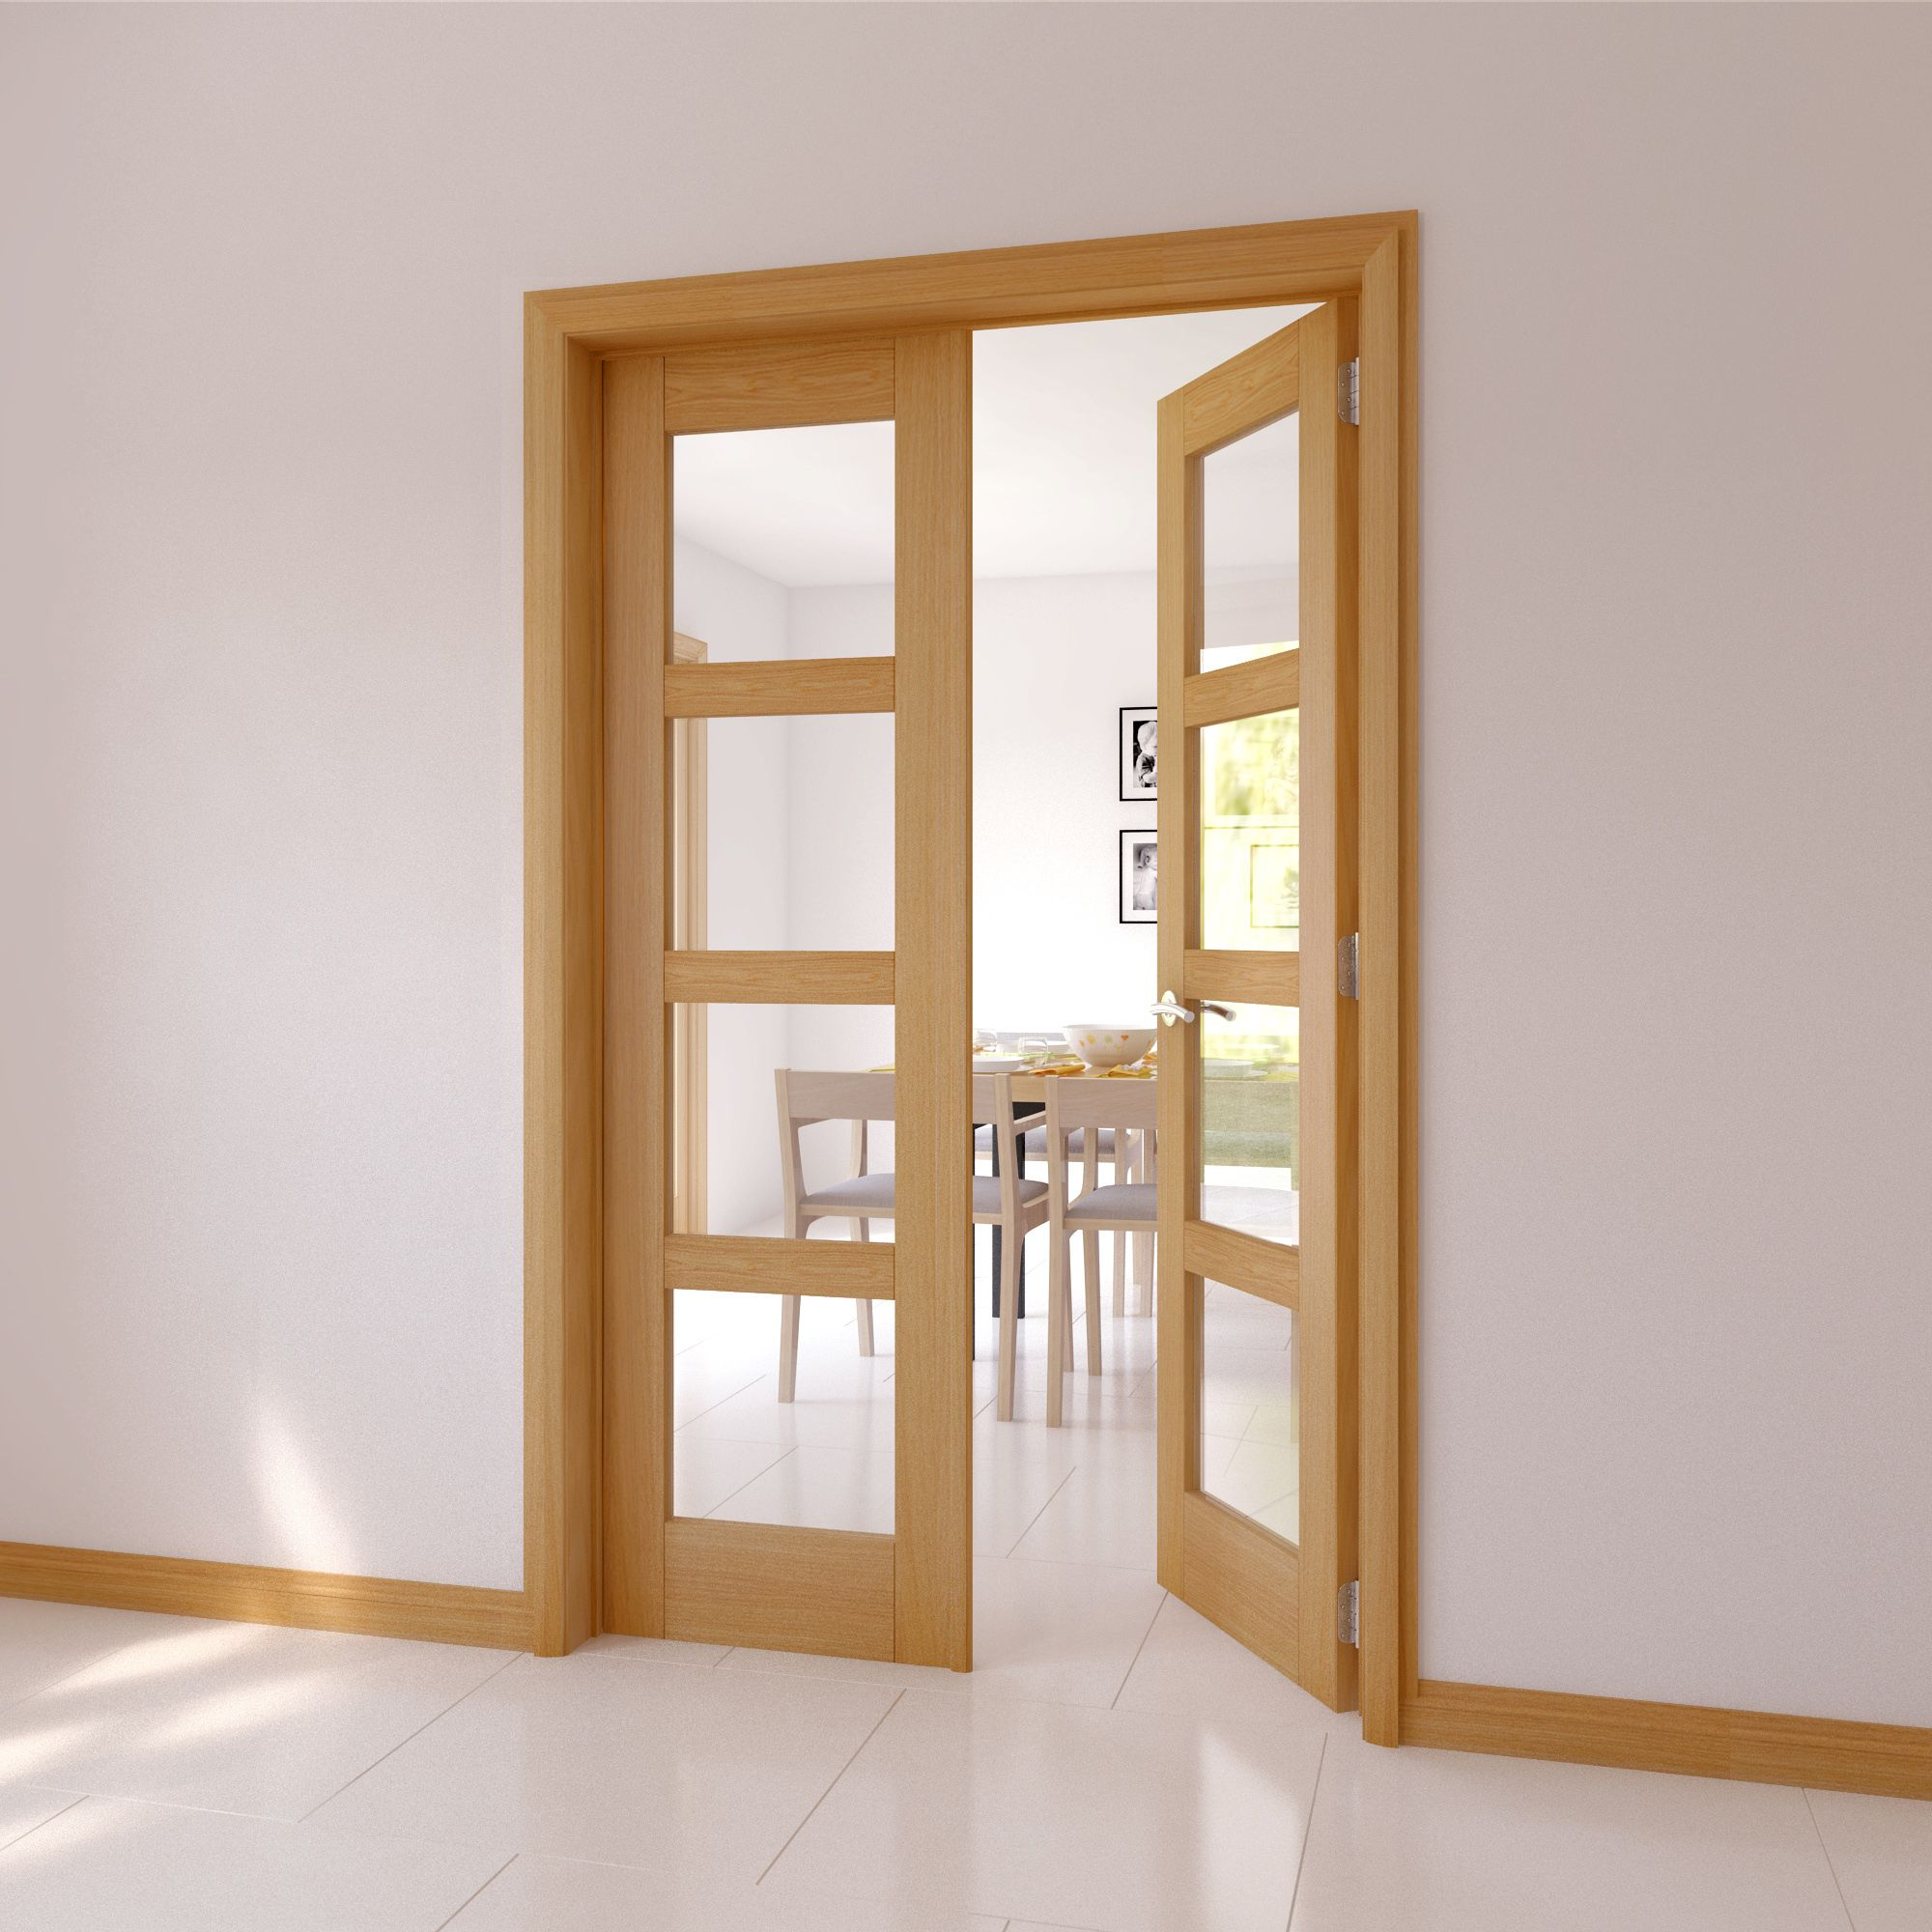 rosco french doors interior photo - 6